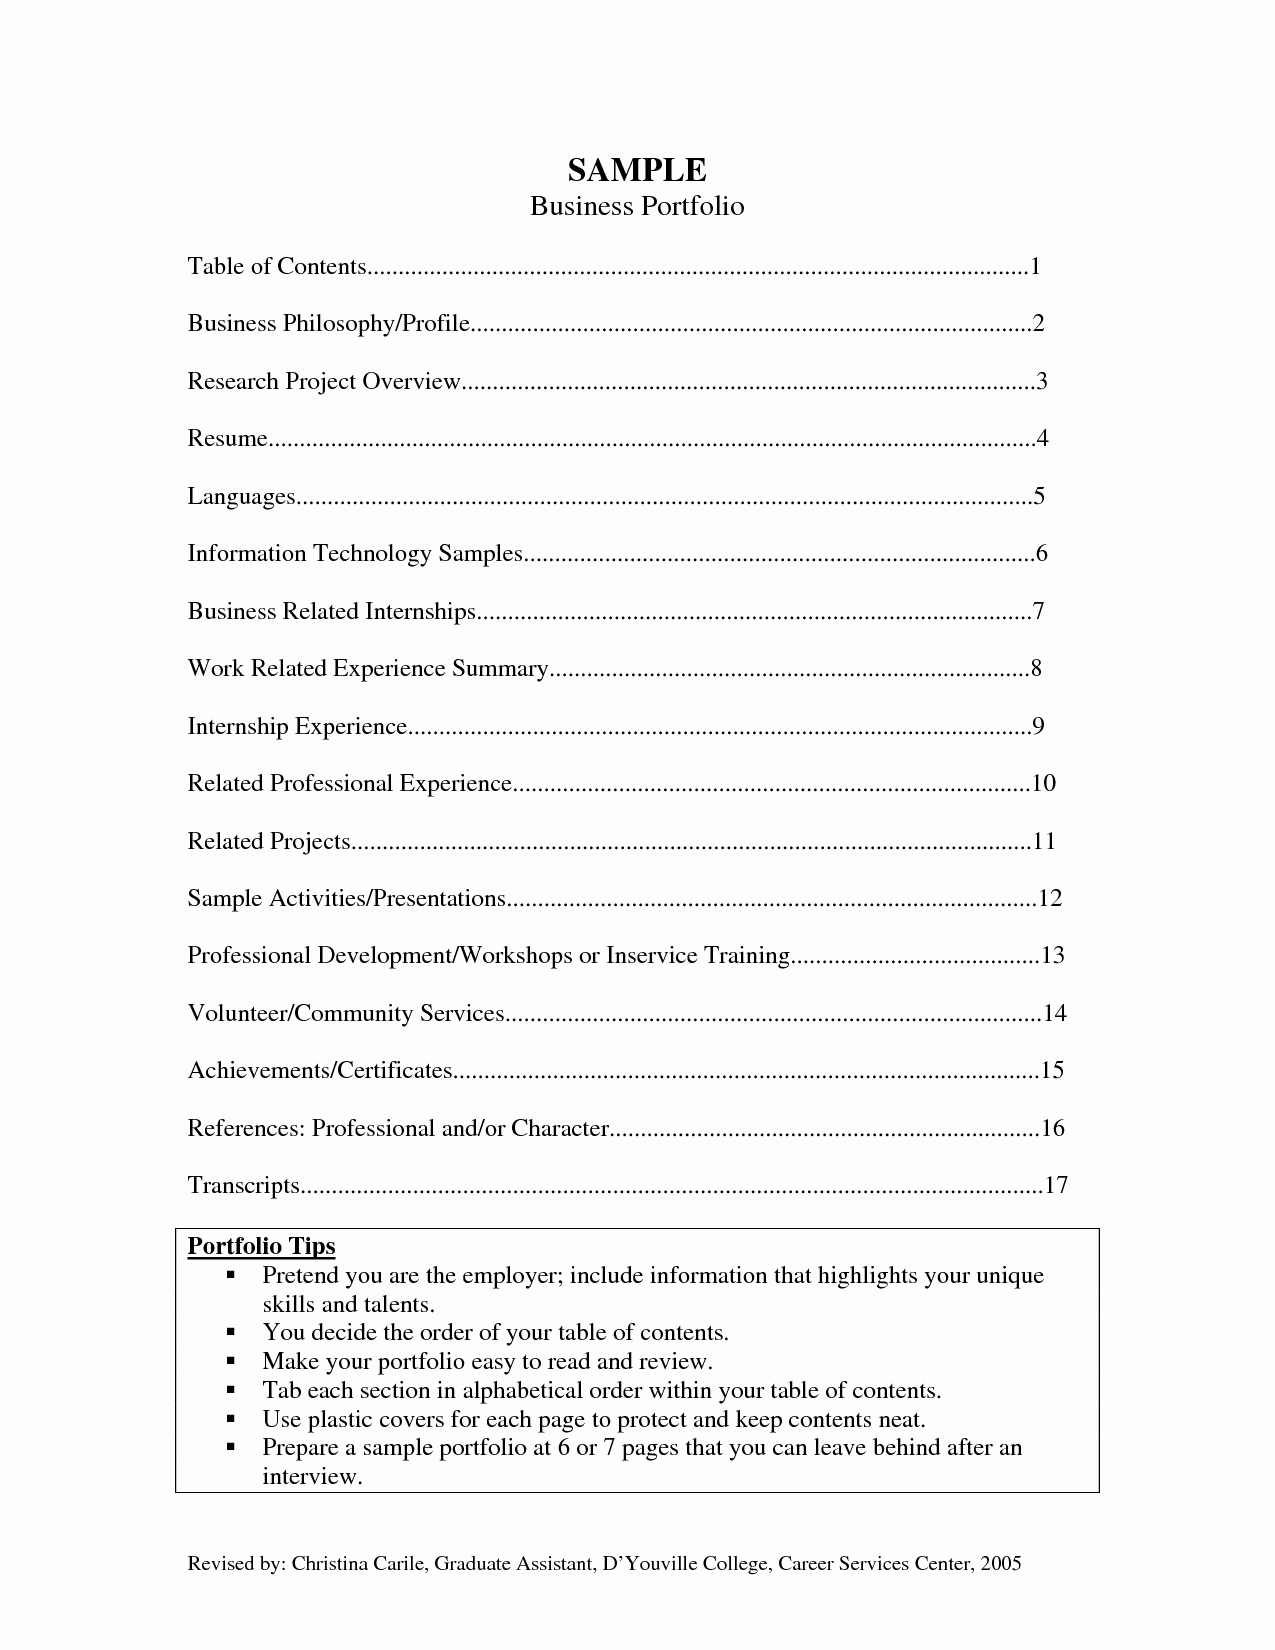 Table Of Contents Sample Page Lovely Best S Of Career Portfolio Samples Job Portfolio